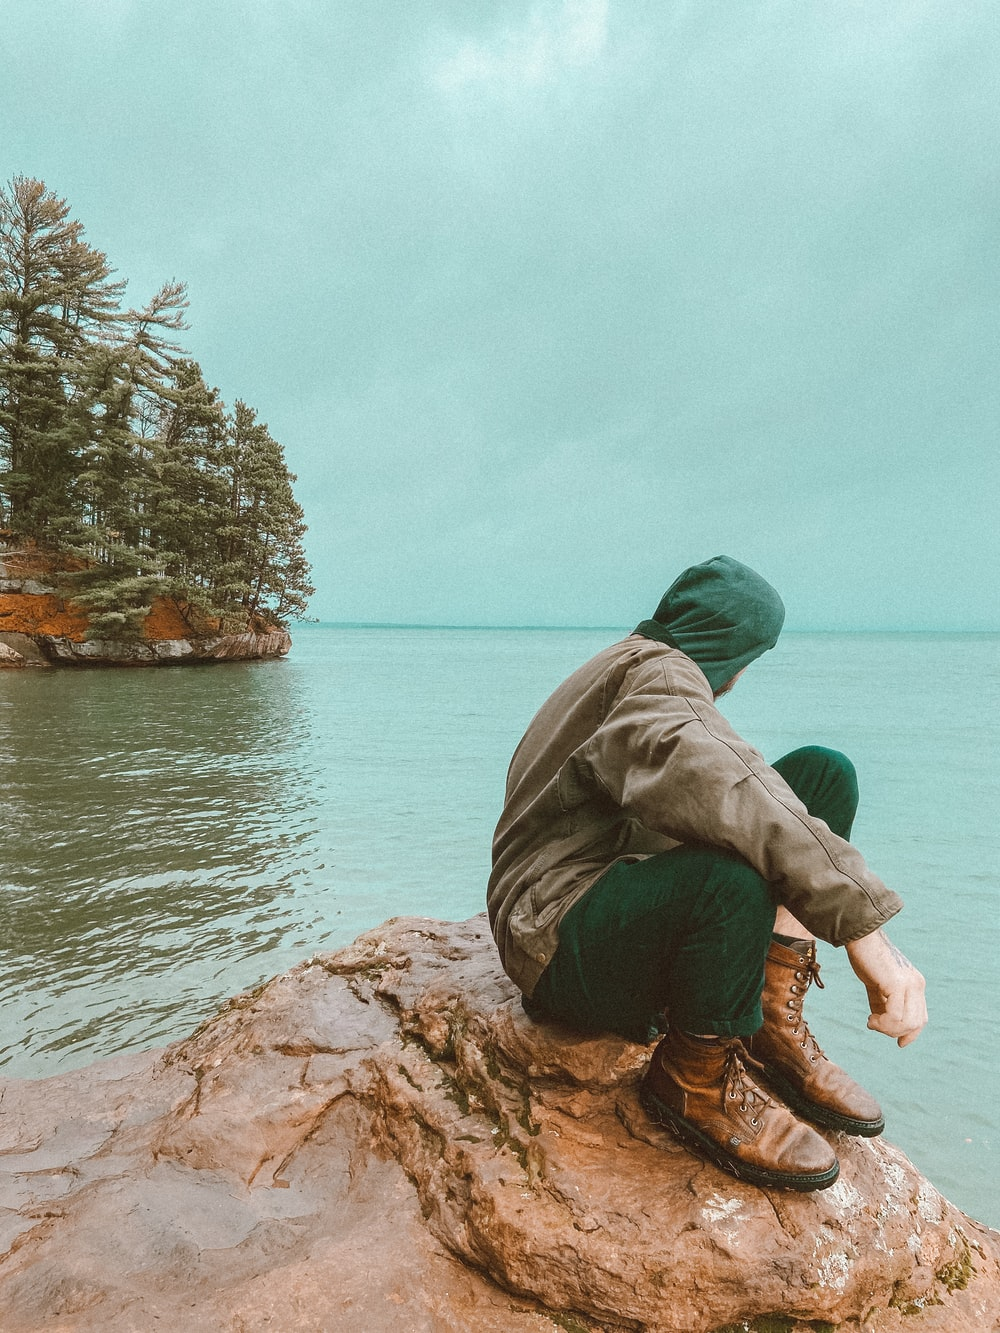 man in green hoodie and brown pants sitting on brown rock near body of water during